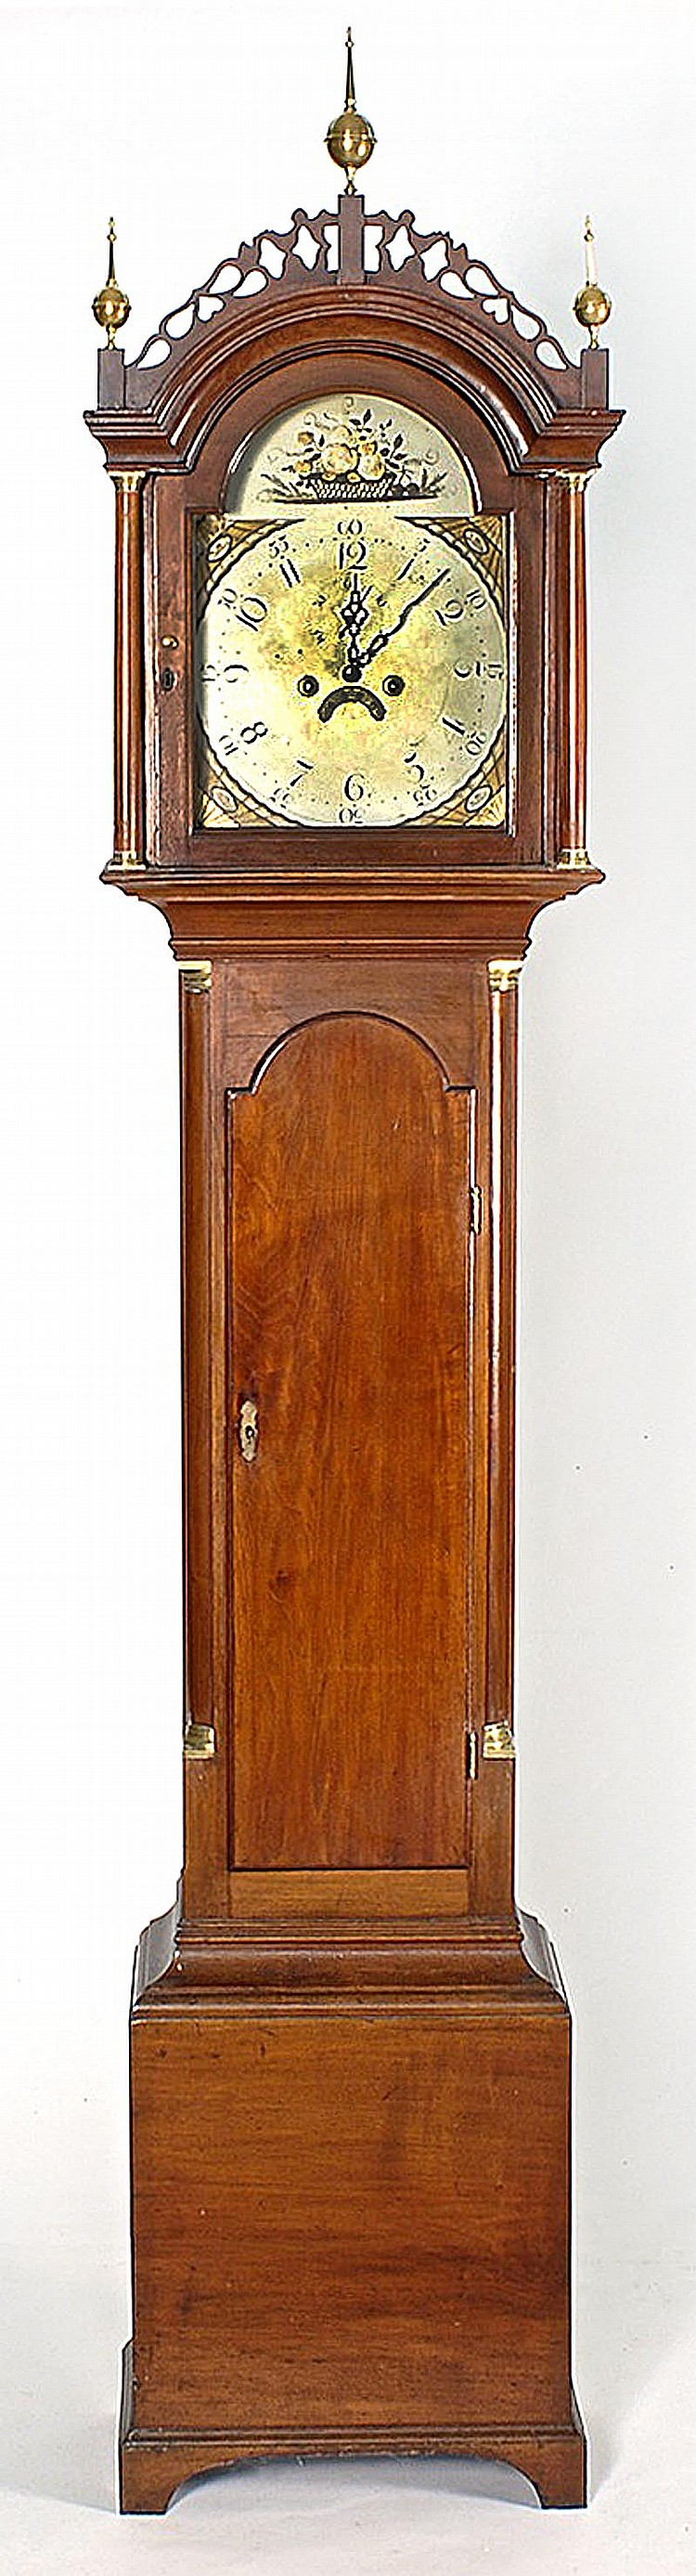 ANTIQUE AMERICAN TALL-CASE CLOCK In mahogany. Brass ball and spire finials above fenestrated fretwork. Bonnet supported by full untu...